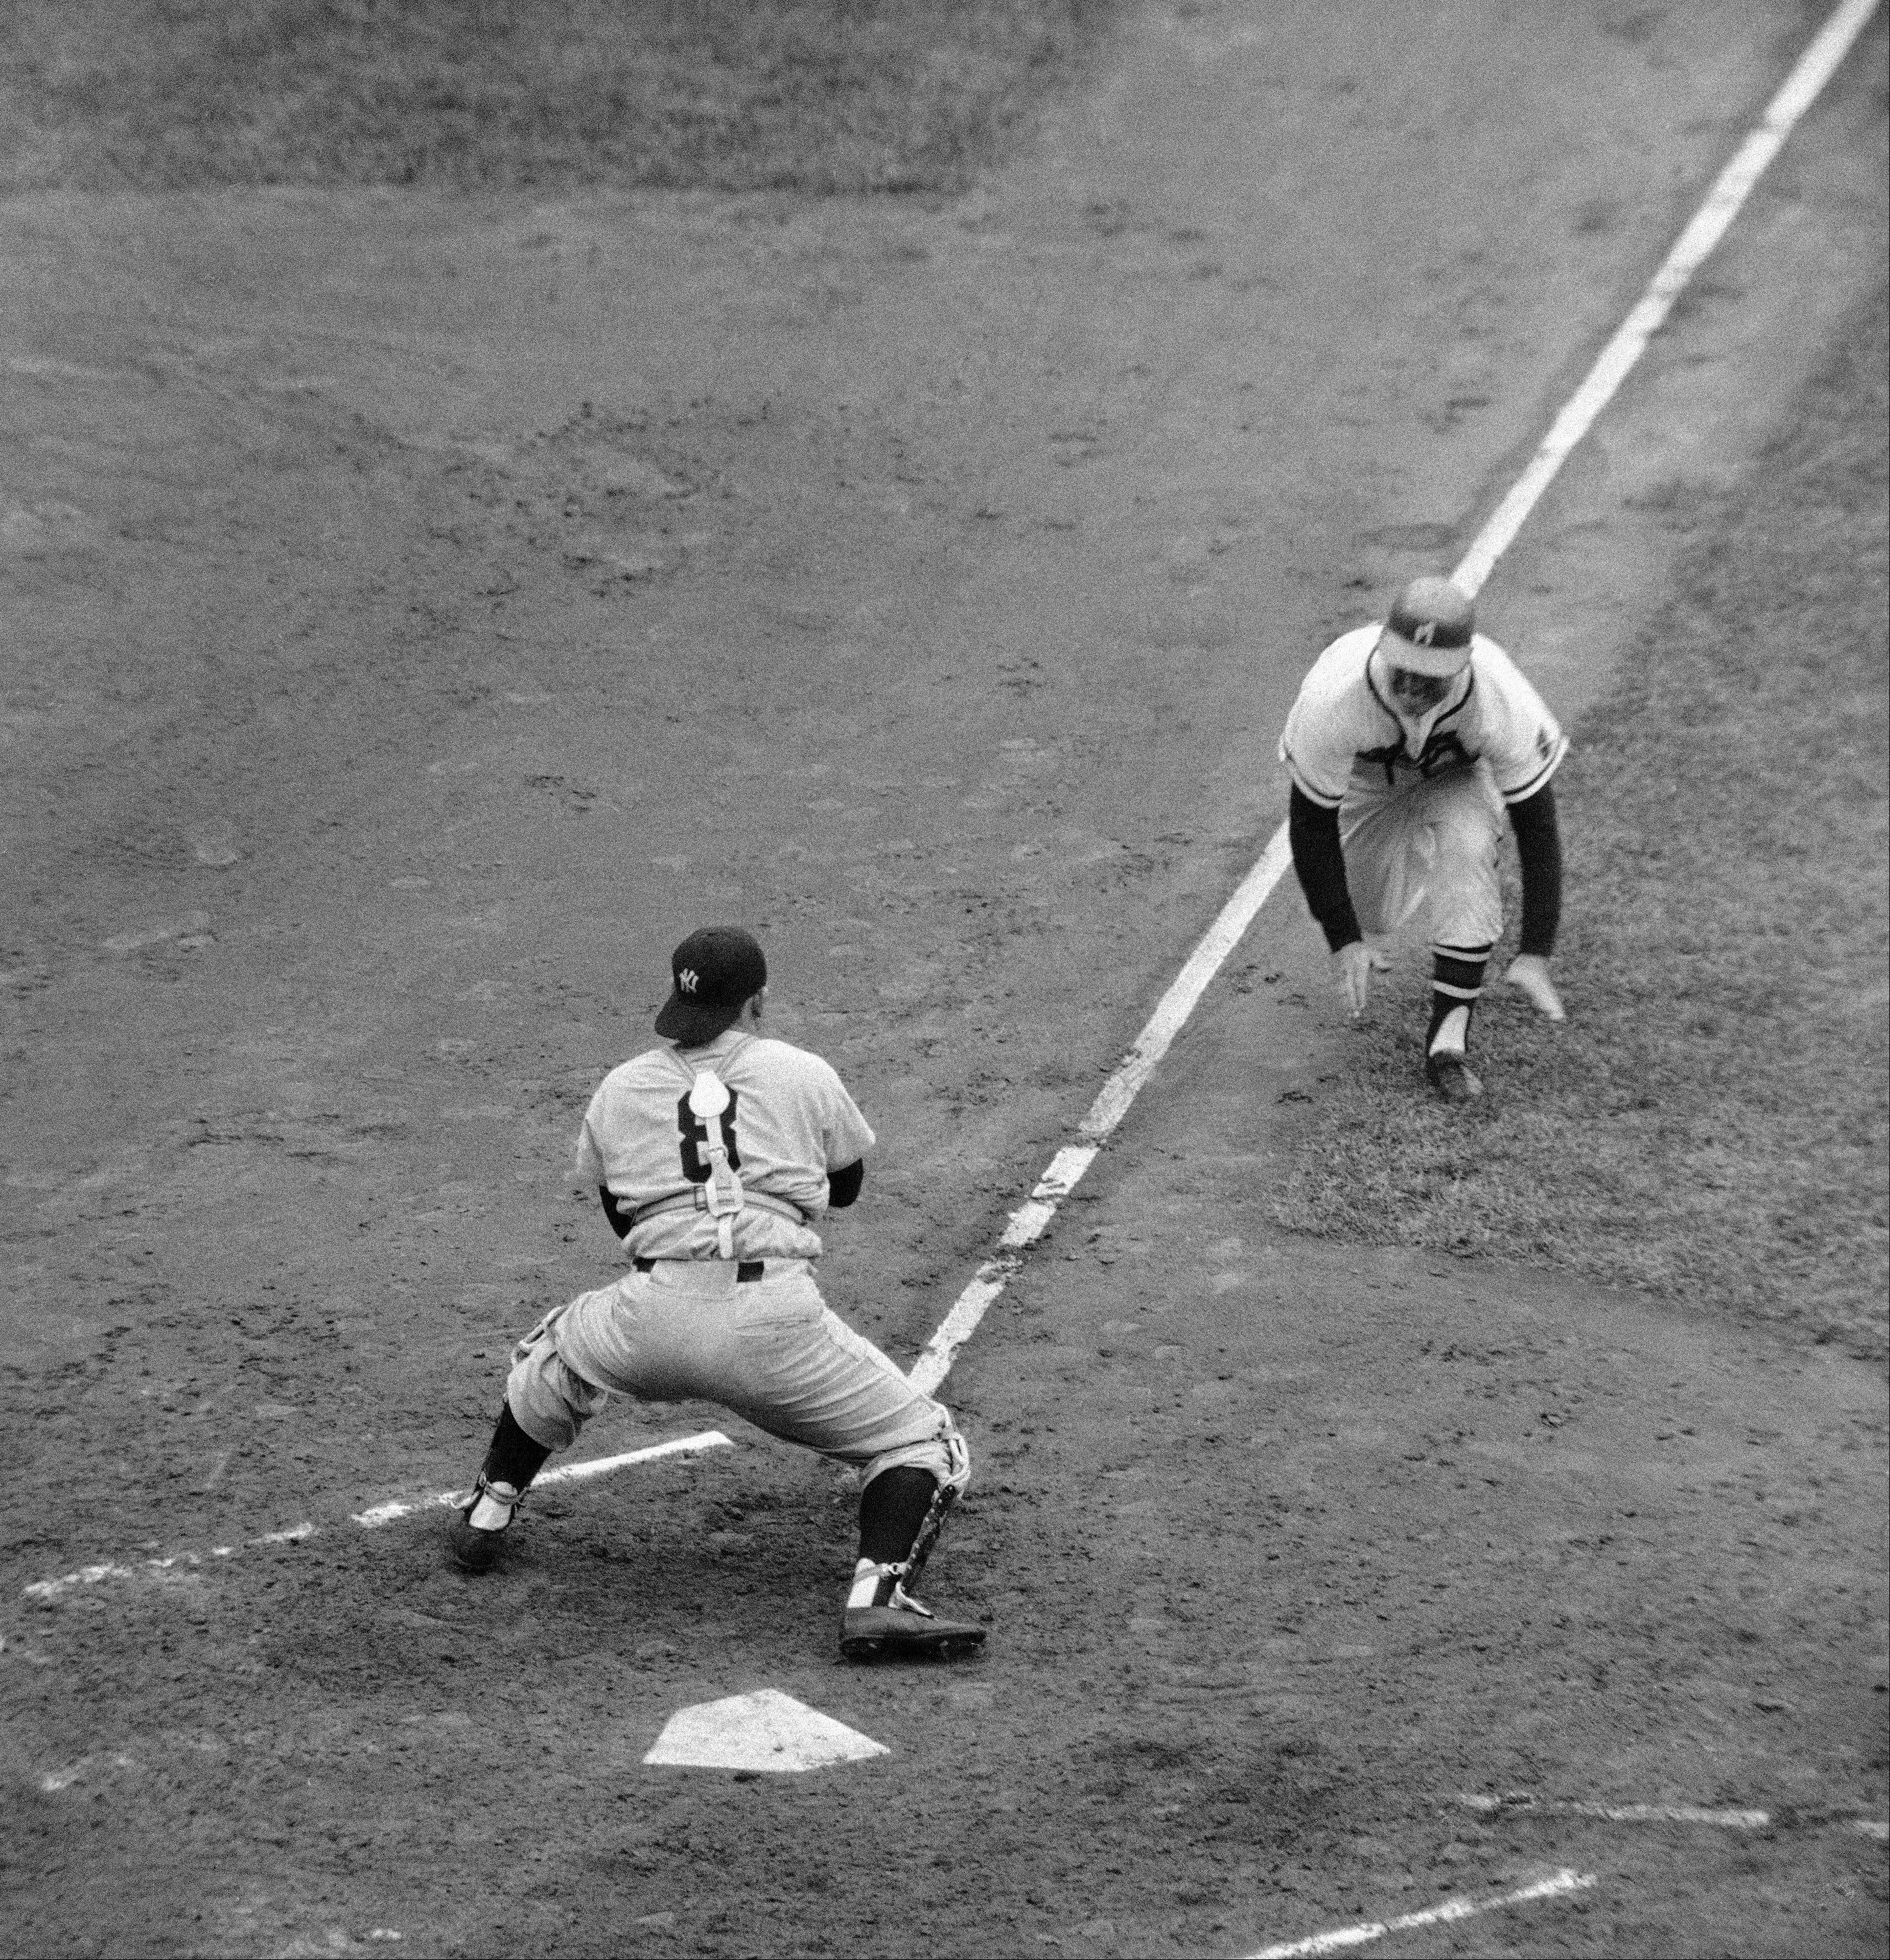 With New York Yankee Yogi Berra blocking the plate, Milwaukee Brave Andy Pafko is thrown out while trying to score from third on a fly out during the 1958 World Series. Pafko's Braves won the 1957 World Series, but lost this rematch with the Yankees.